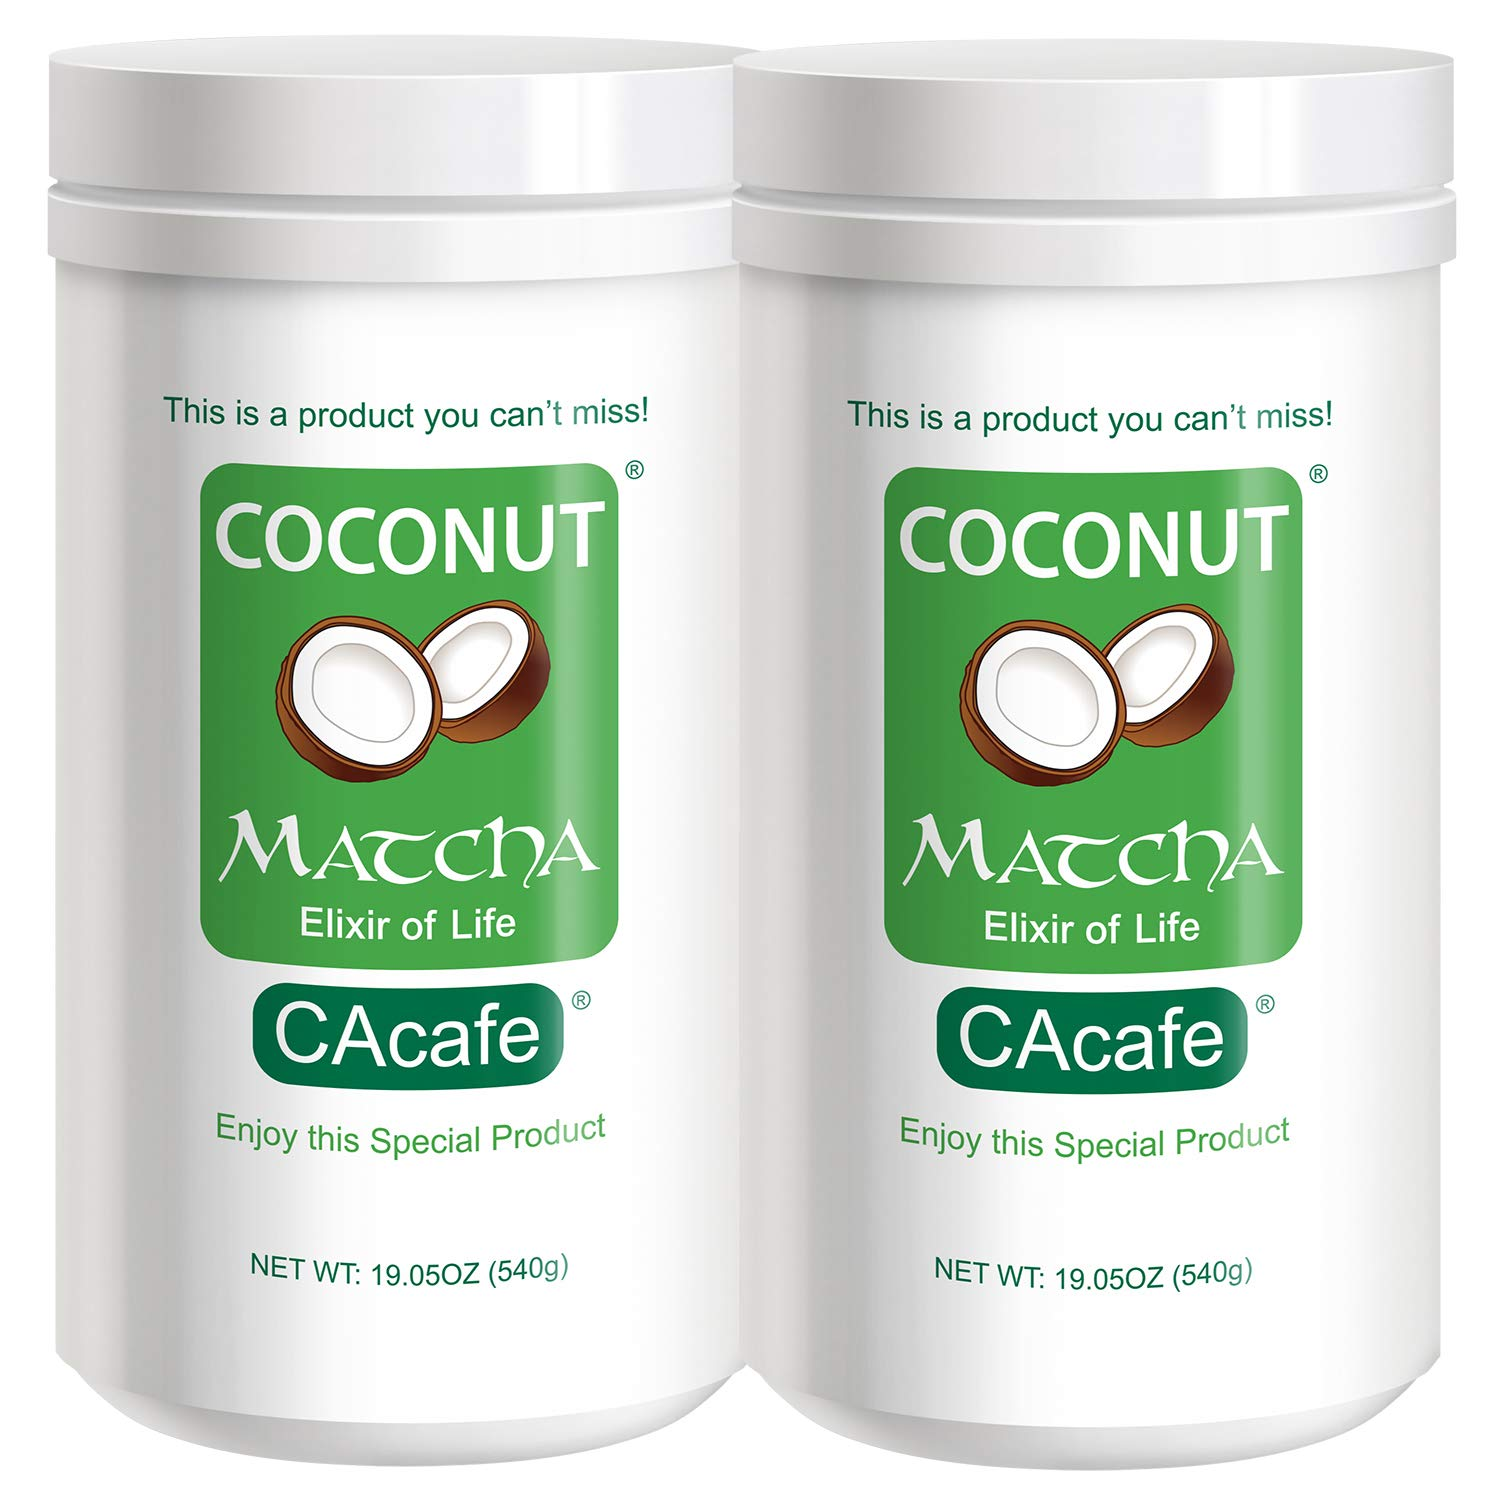 Coconut Matcha, this is a product you can't miss. Pack of 2